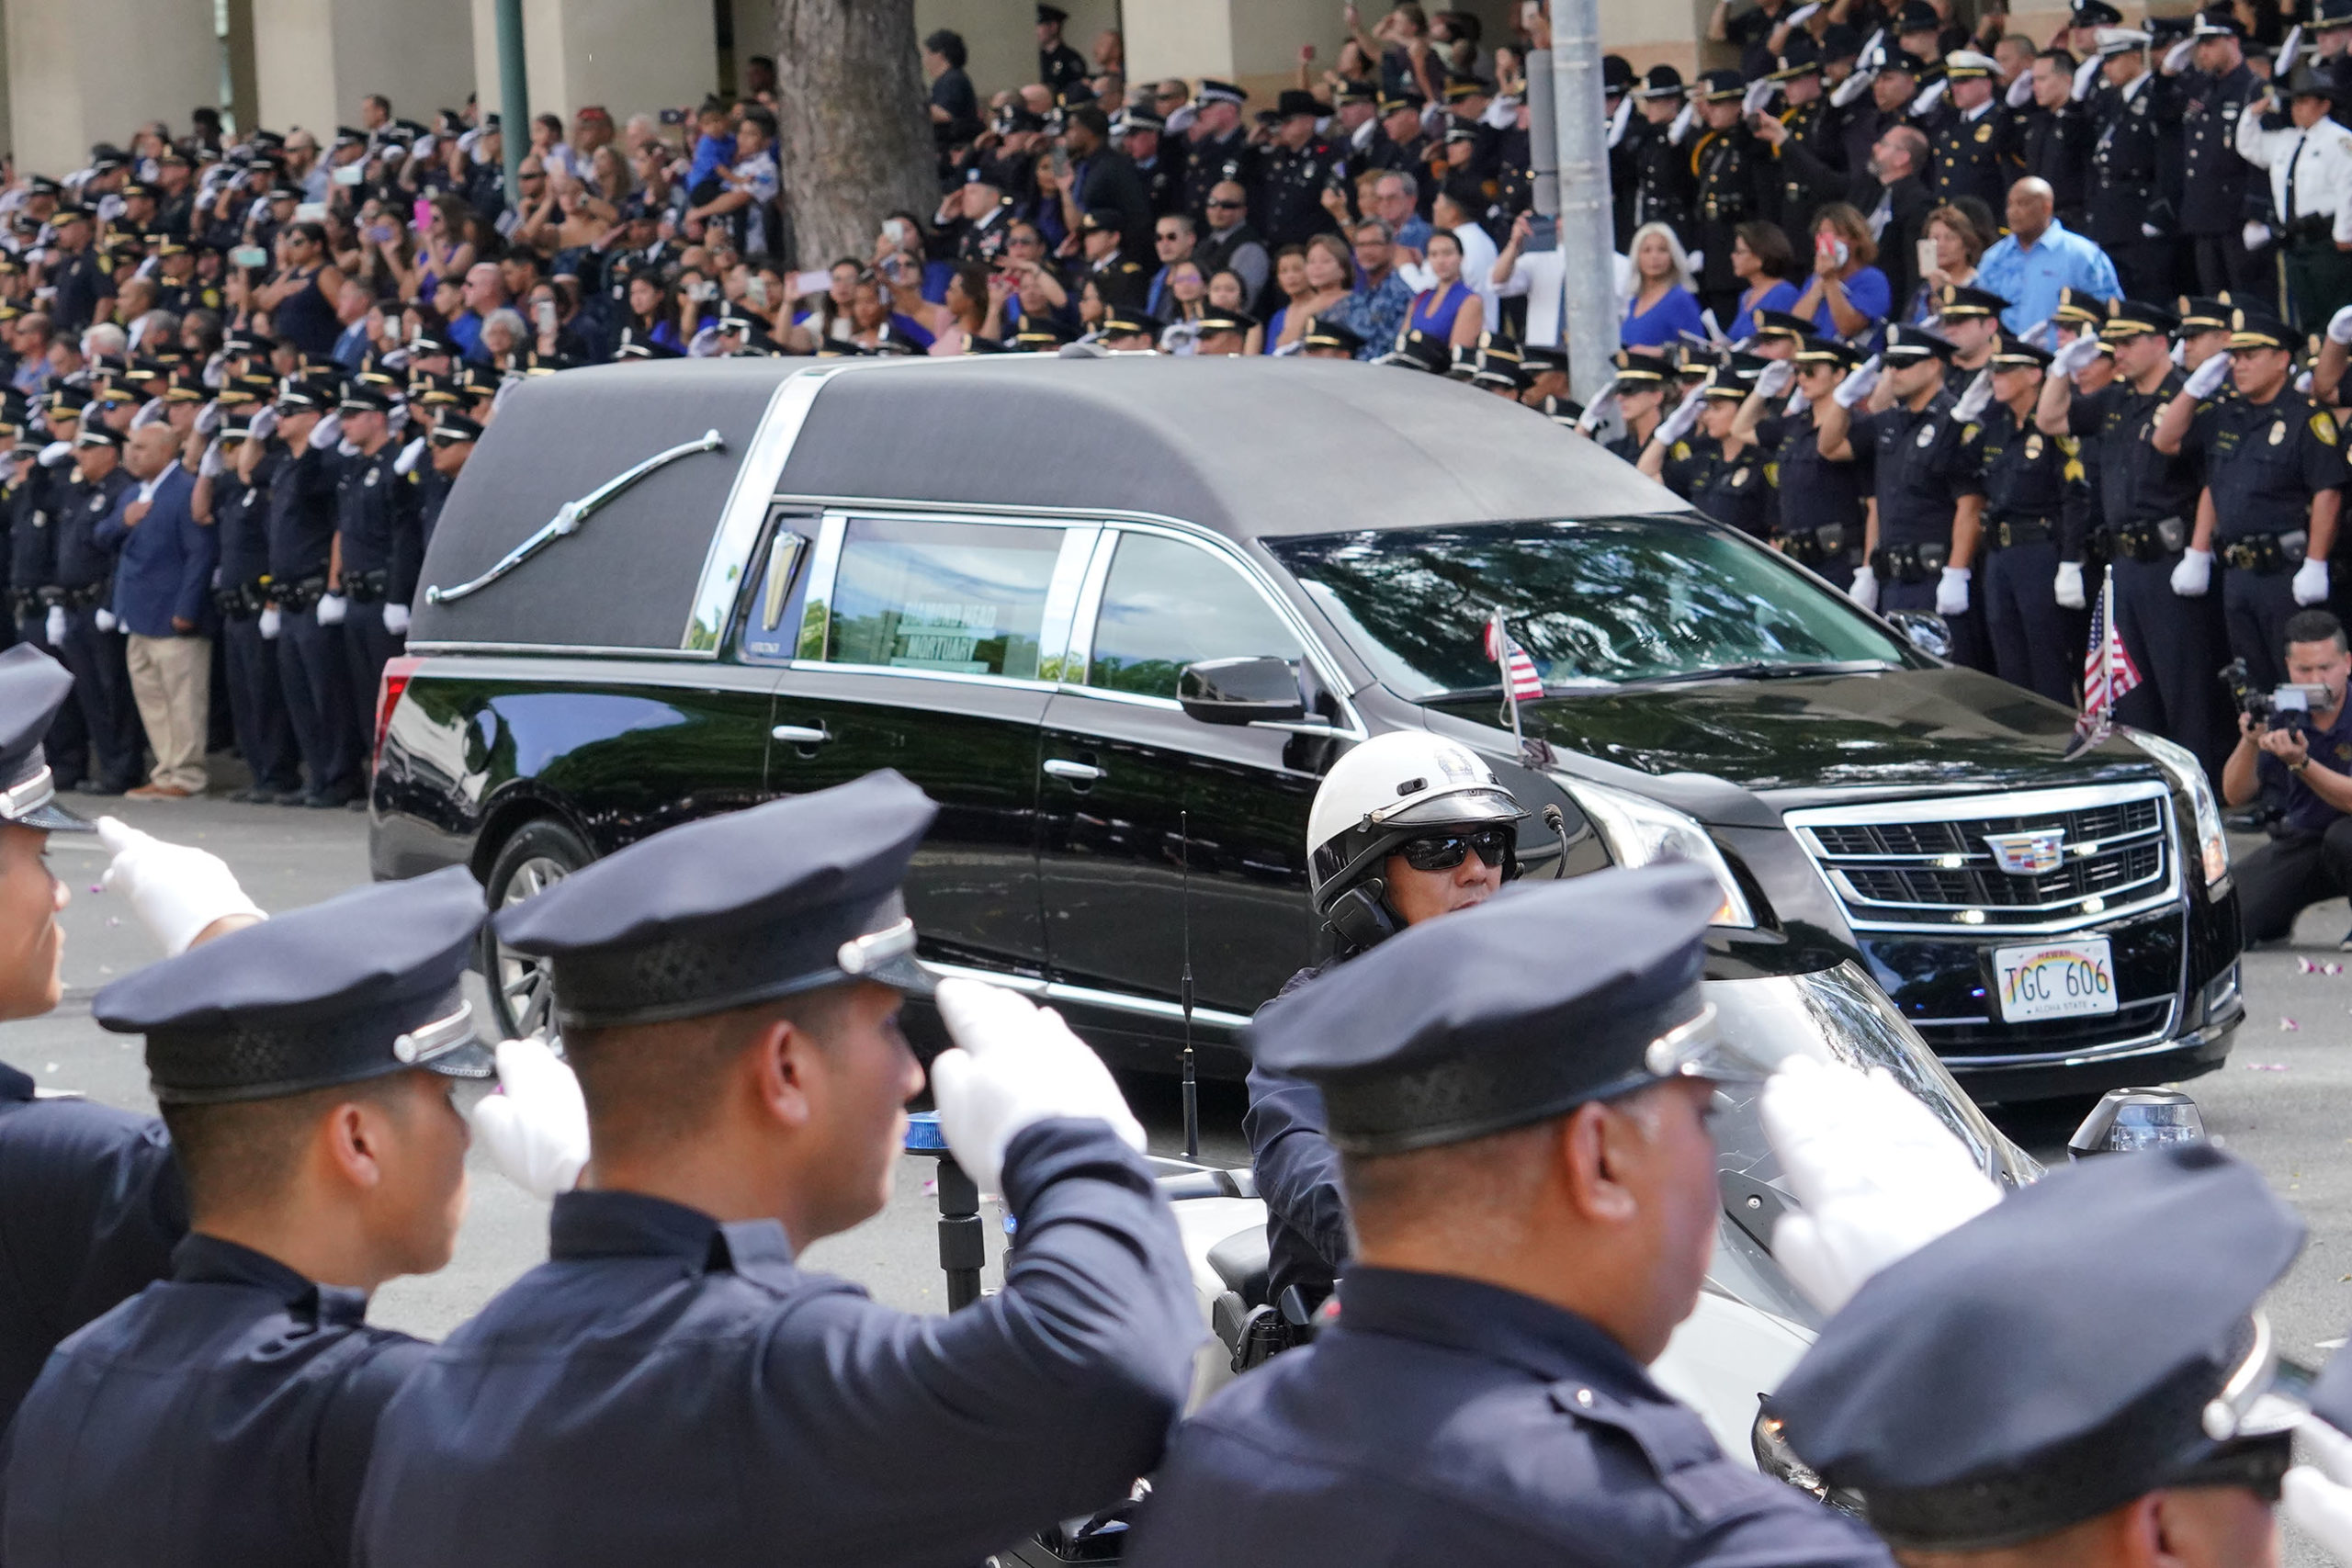 <p>A hearse carrying the casket of Officer Tiffany Enriquez arrived at HPD headquarters while a crowd of law enforcement, civilian workers and the public watched. It was followed by a limousine transporting family members of Enriquez, who were saluted by HPD officers.</p>